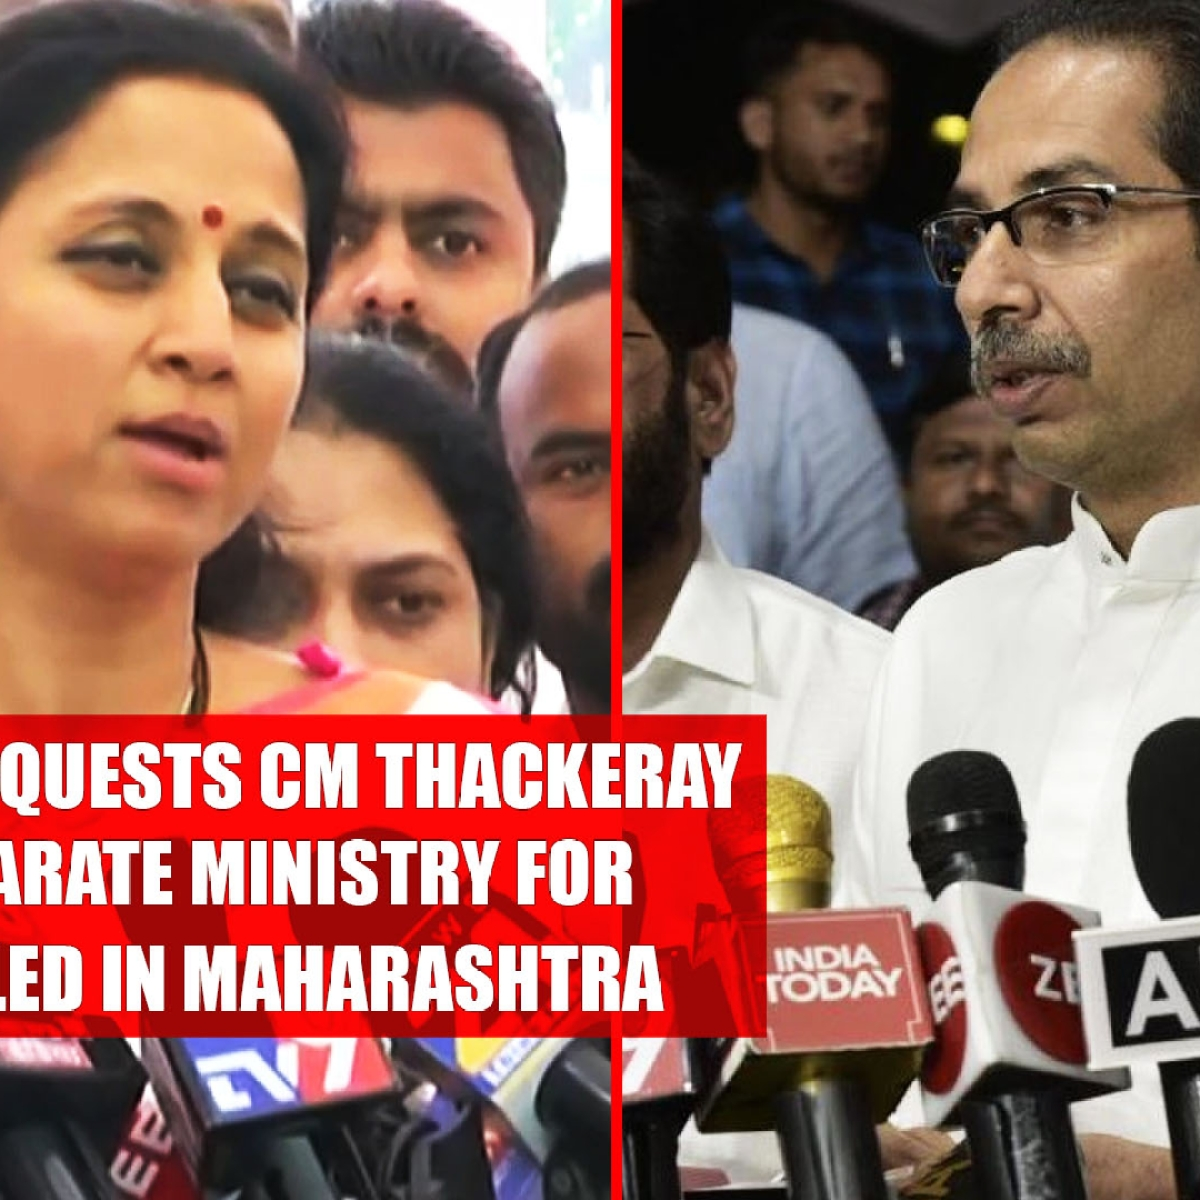 Supriya Sule requests CM Thackeray to form separate ministry for specially-abled in Maharashtra